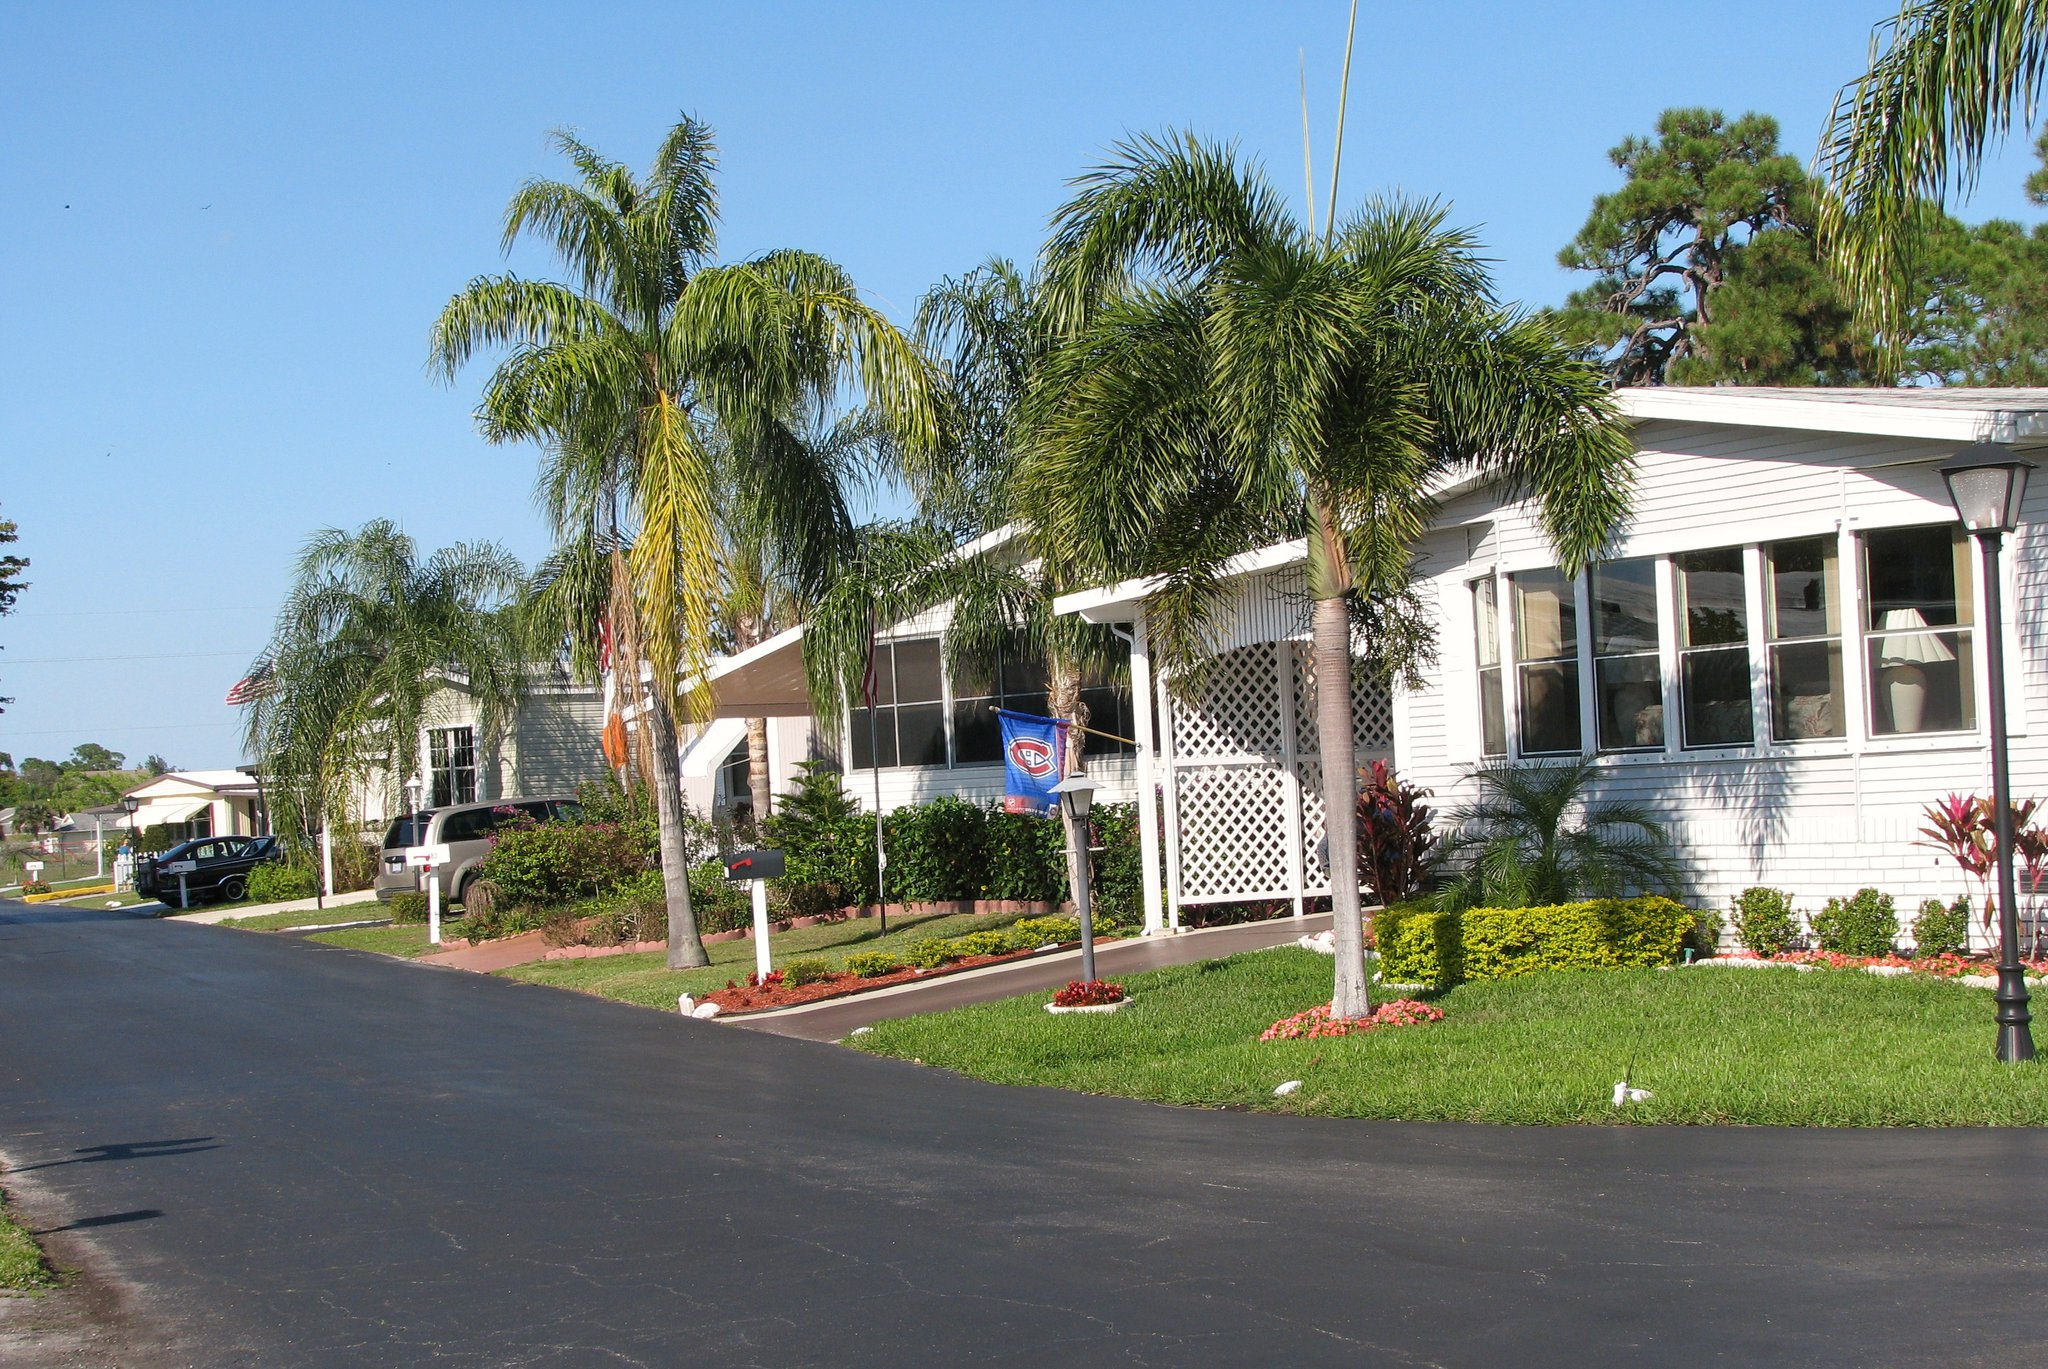 Homes for Sale West Palm Beach   Mobile Home Way